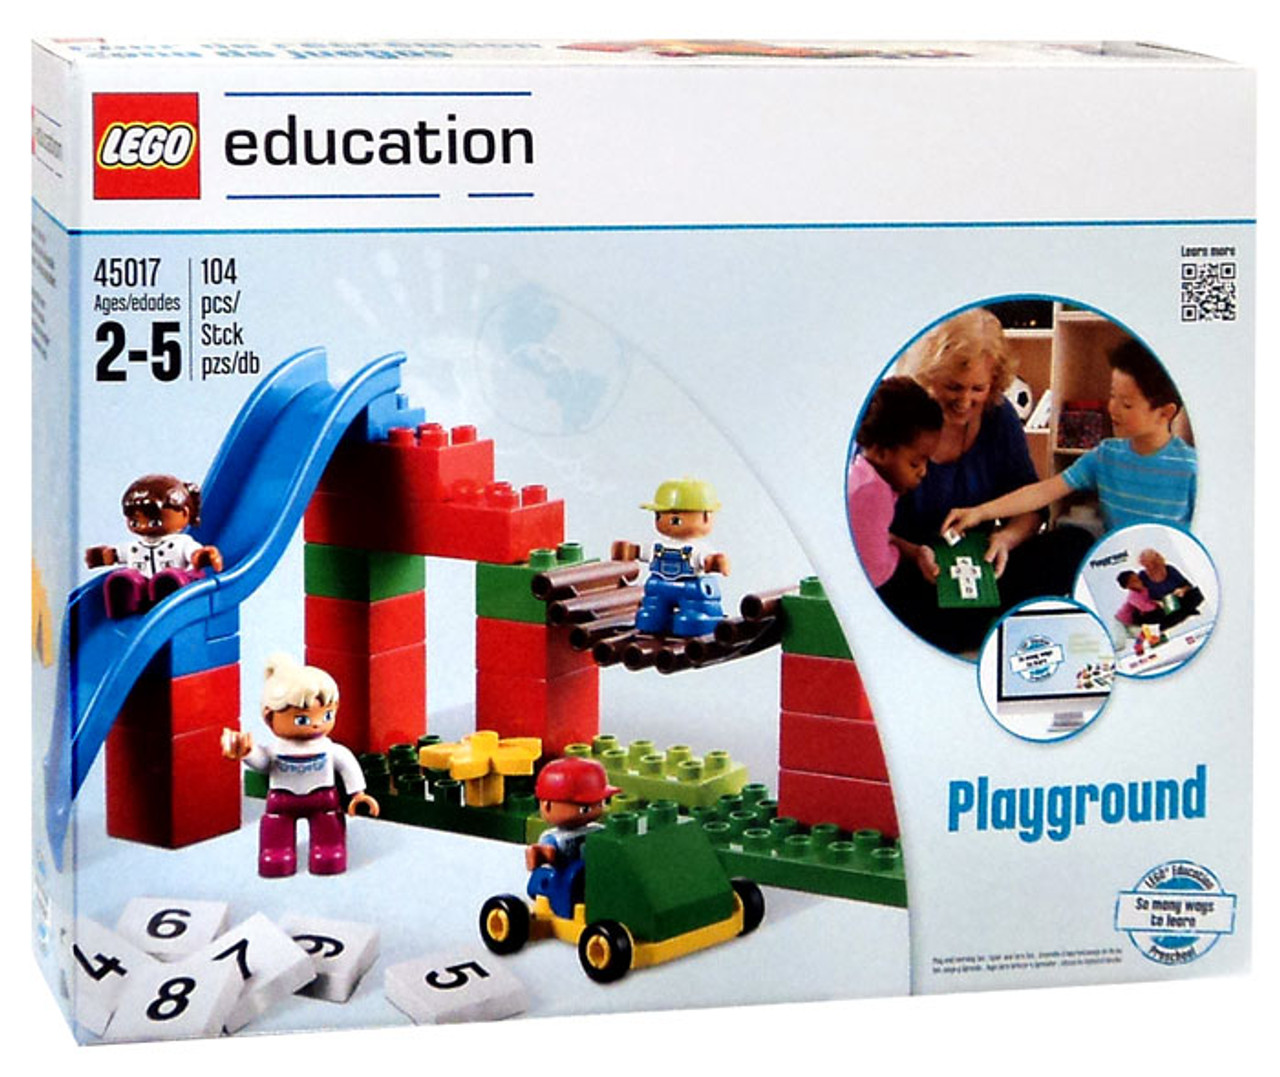 lego-education-set-45017-playground-new-17__82886.1461360495.jpg?c=2&imbypass=on